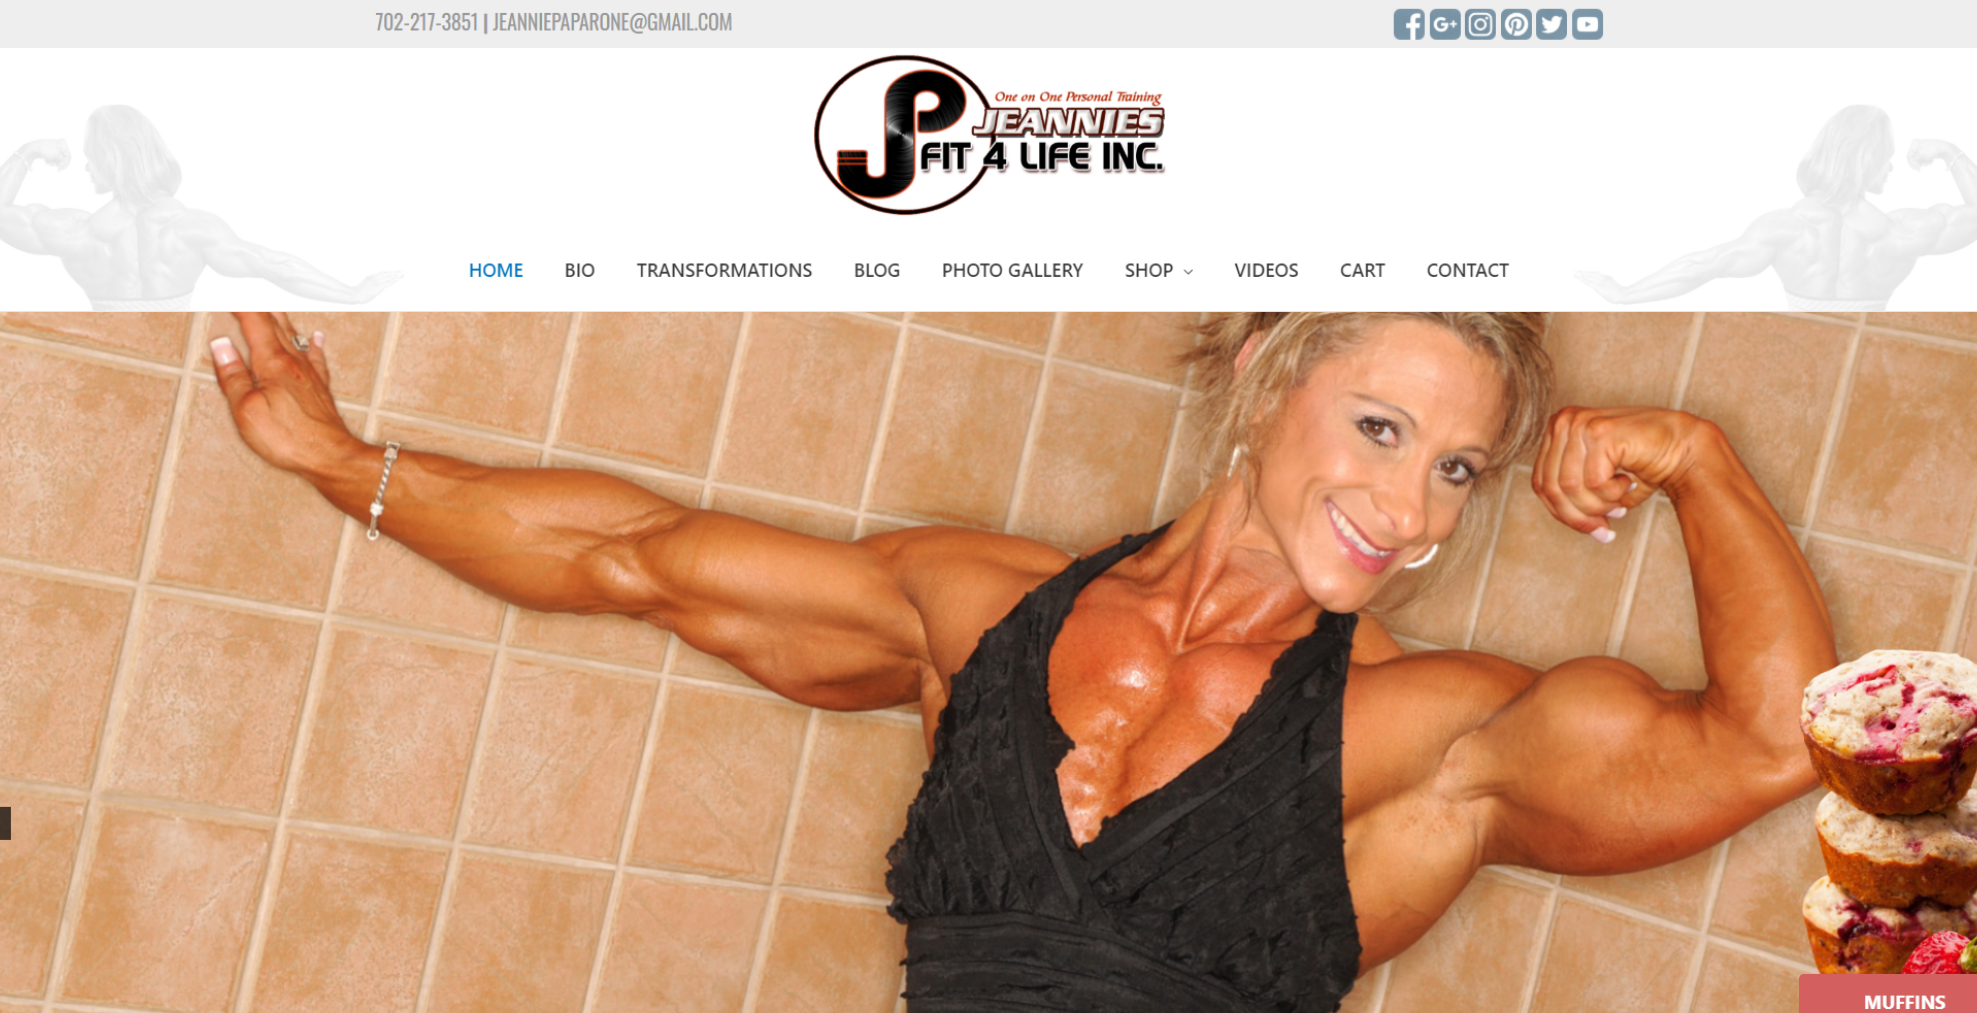 las vegas website development by 702 Pros LLC for Jeannies Fit 4 Life | Justin Young